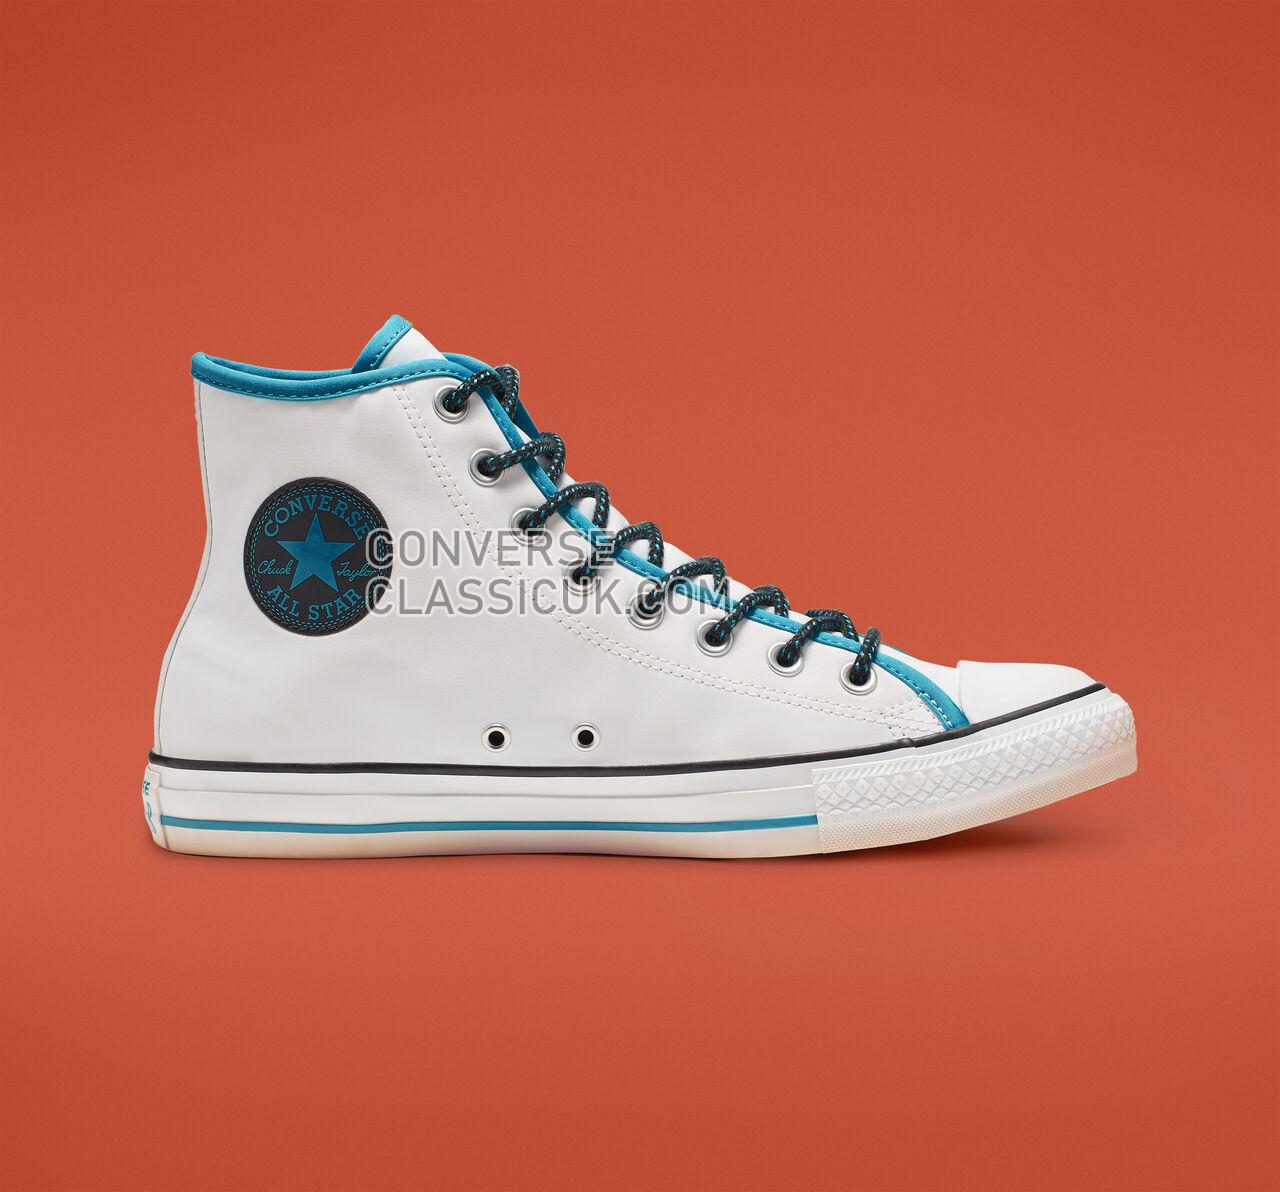 Converse Chuck Taylor All Star Get Tubed High Top Mens Womens Unisex 164091F White/Gnarly Blue/White Shoes